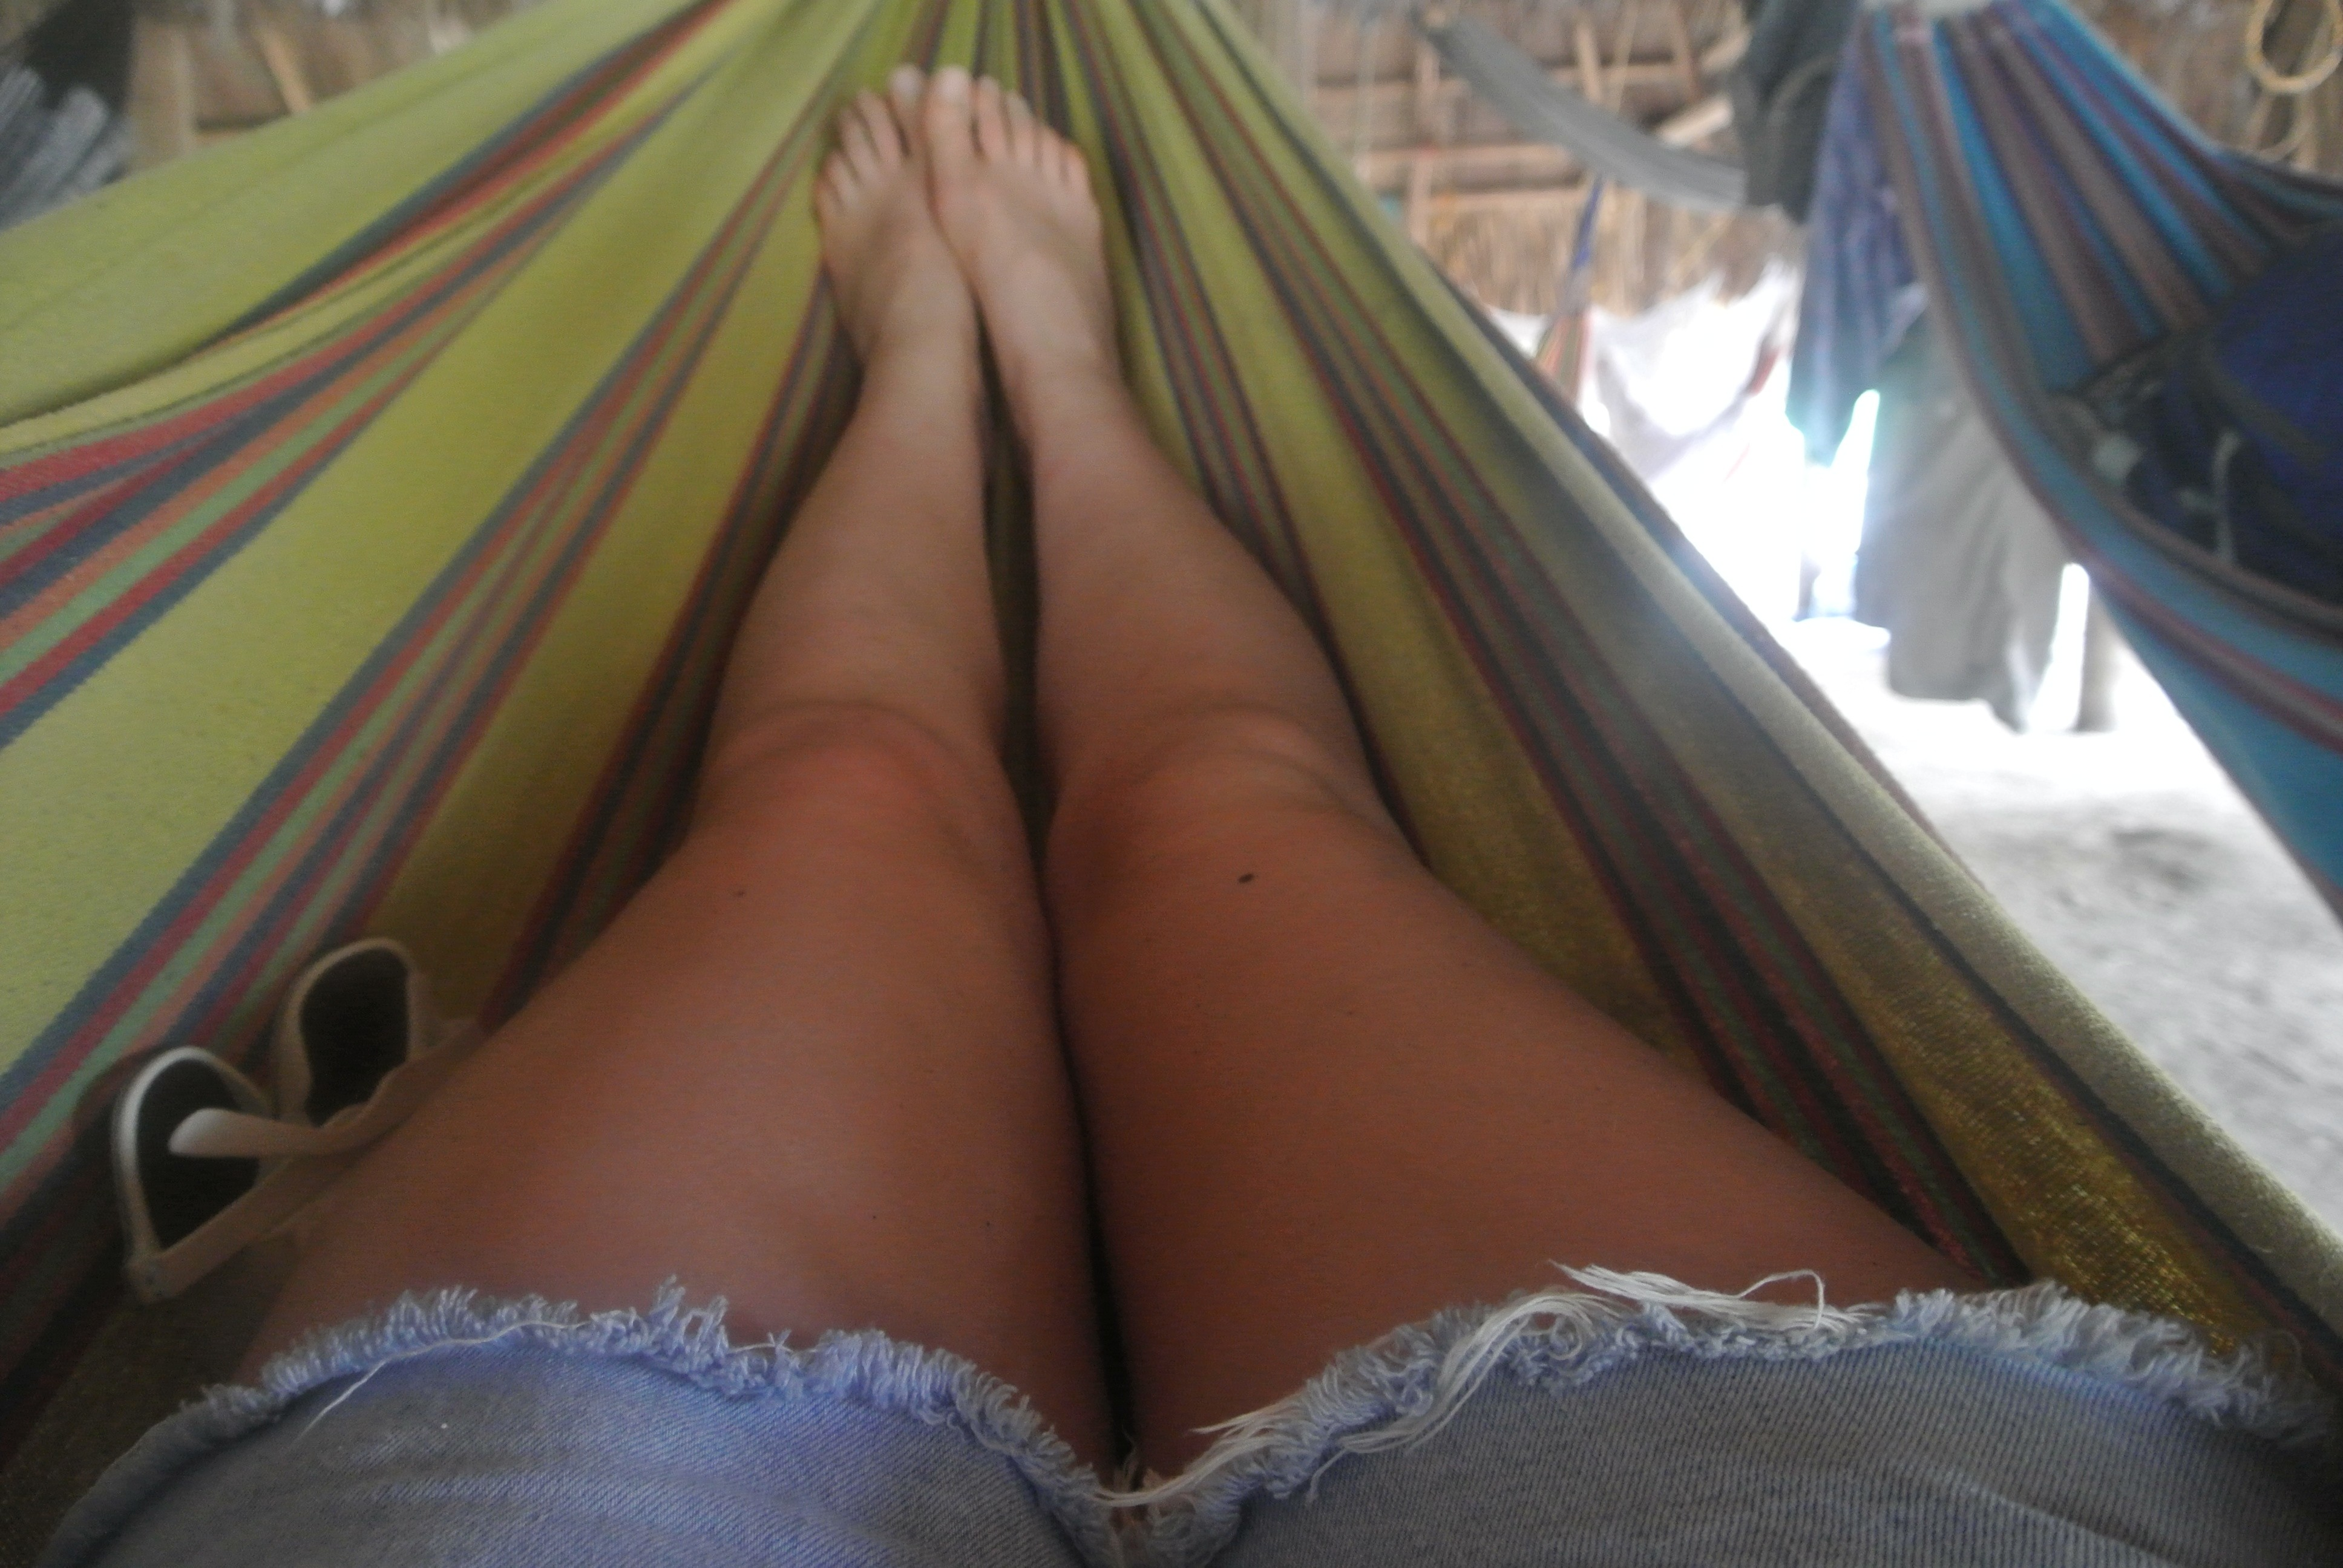 Sitting back and relaxing in a hammock in Parque Tayrona, Colombia